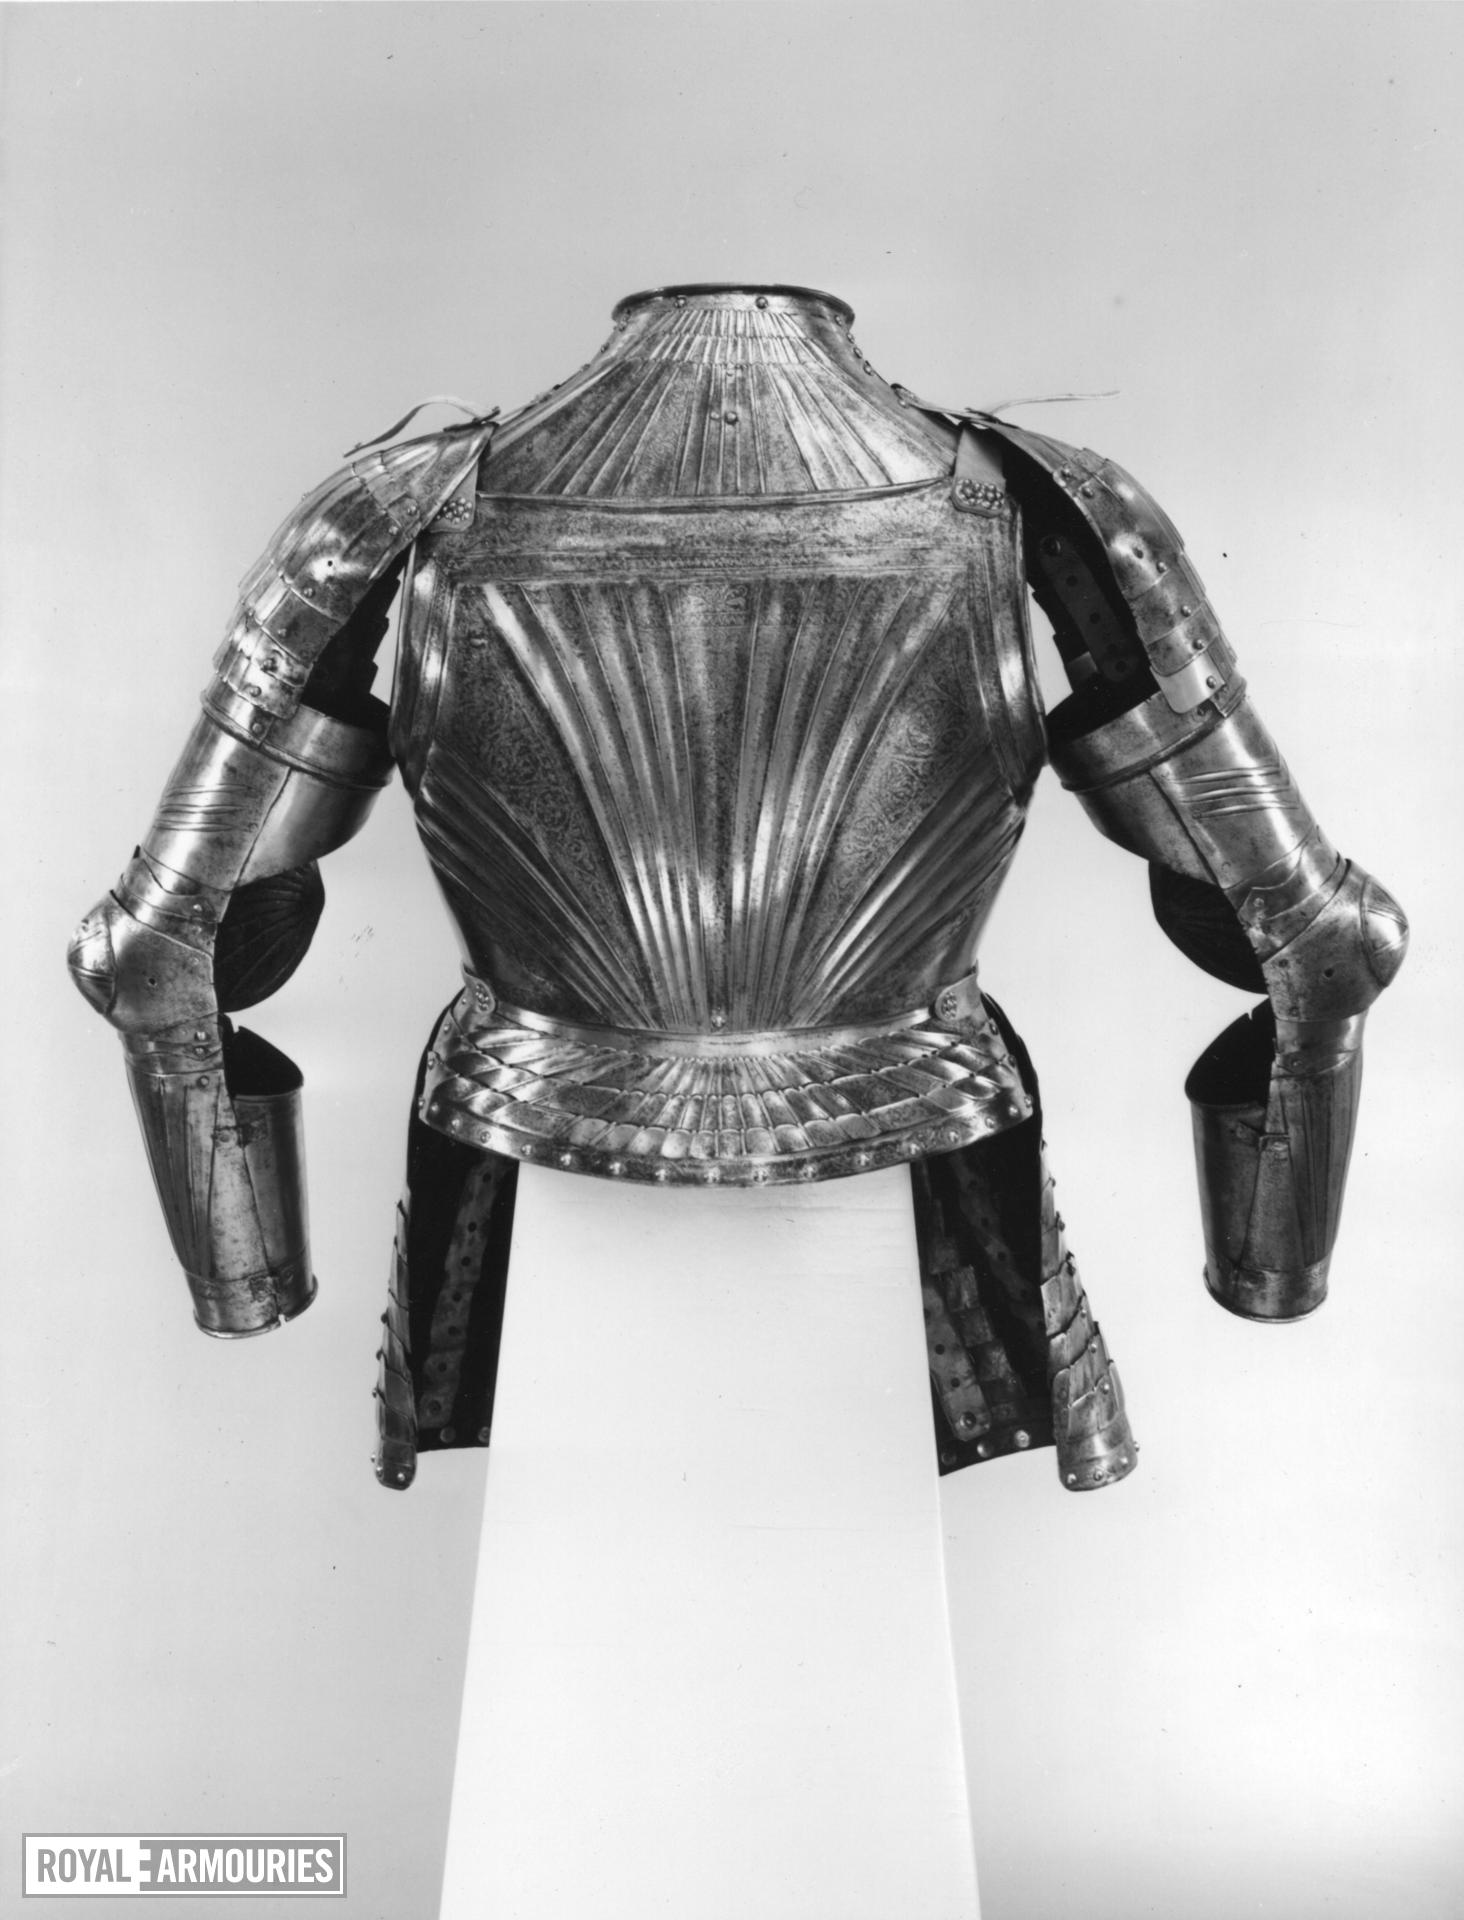 Half Armour consisting of breast and back plate, gorget, and tassets.